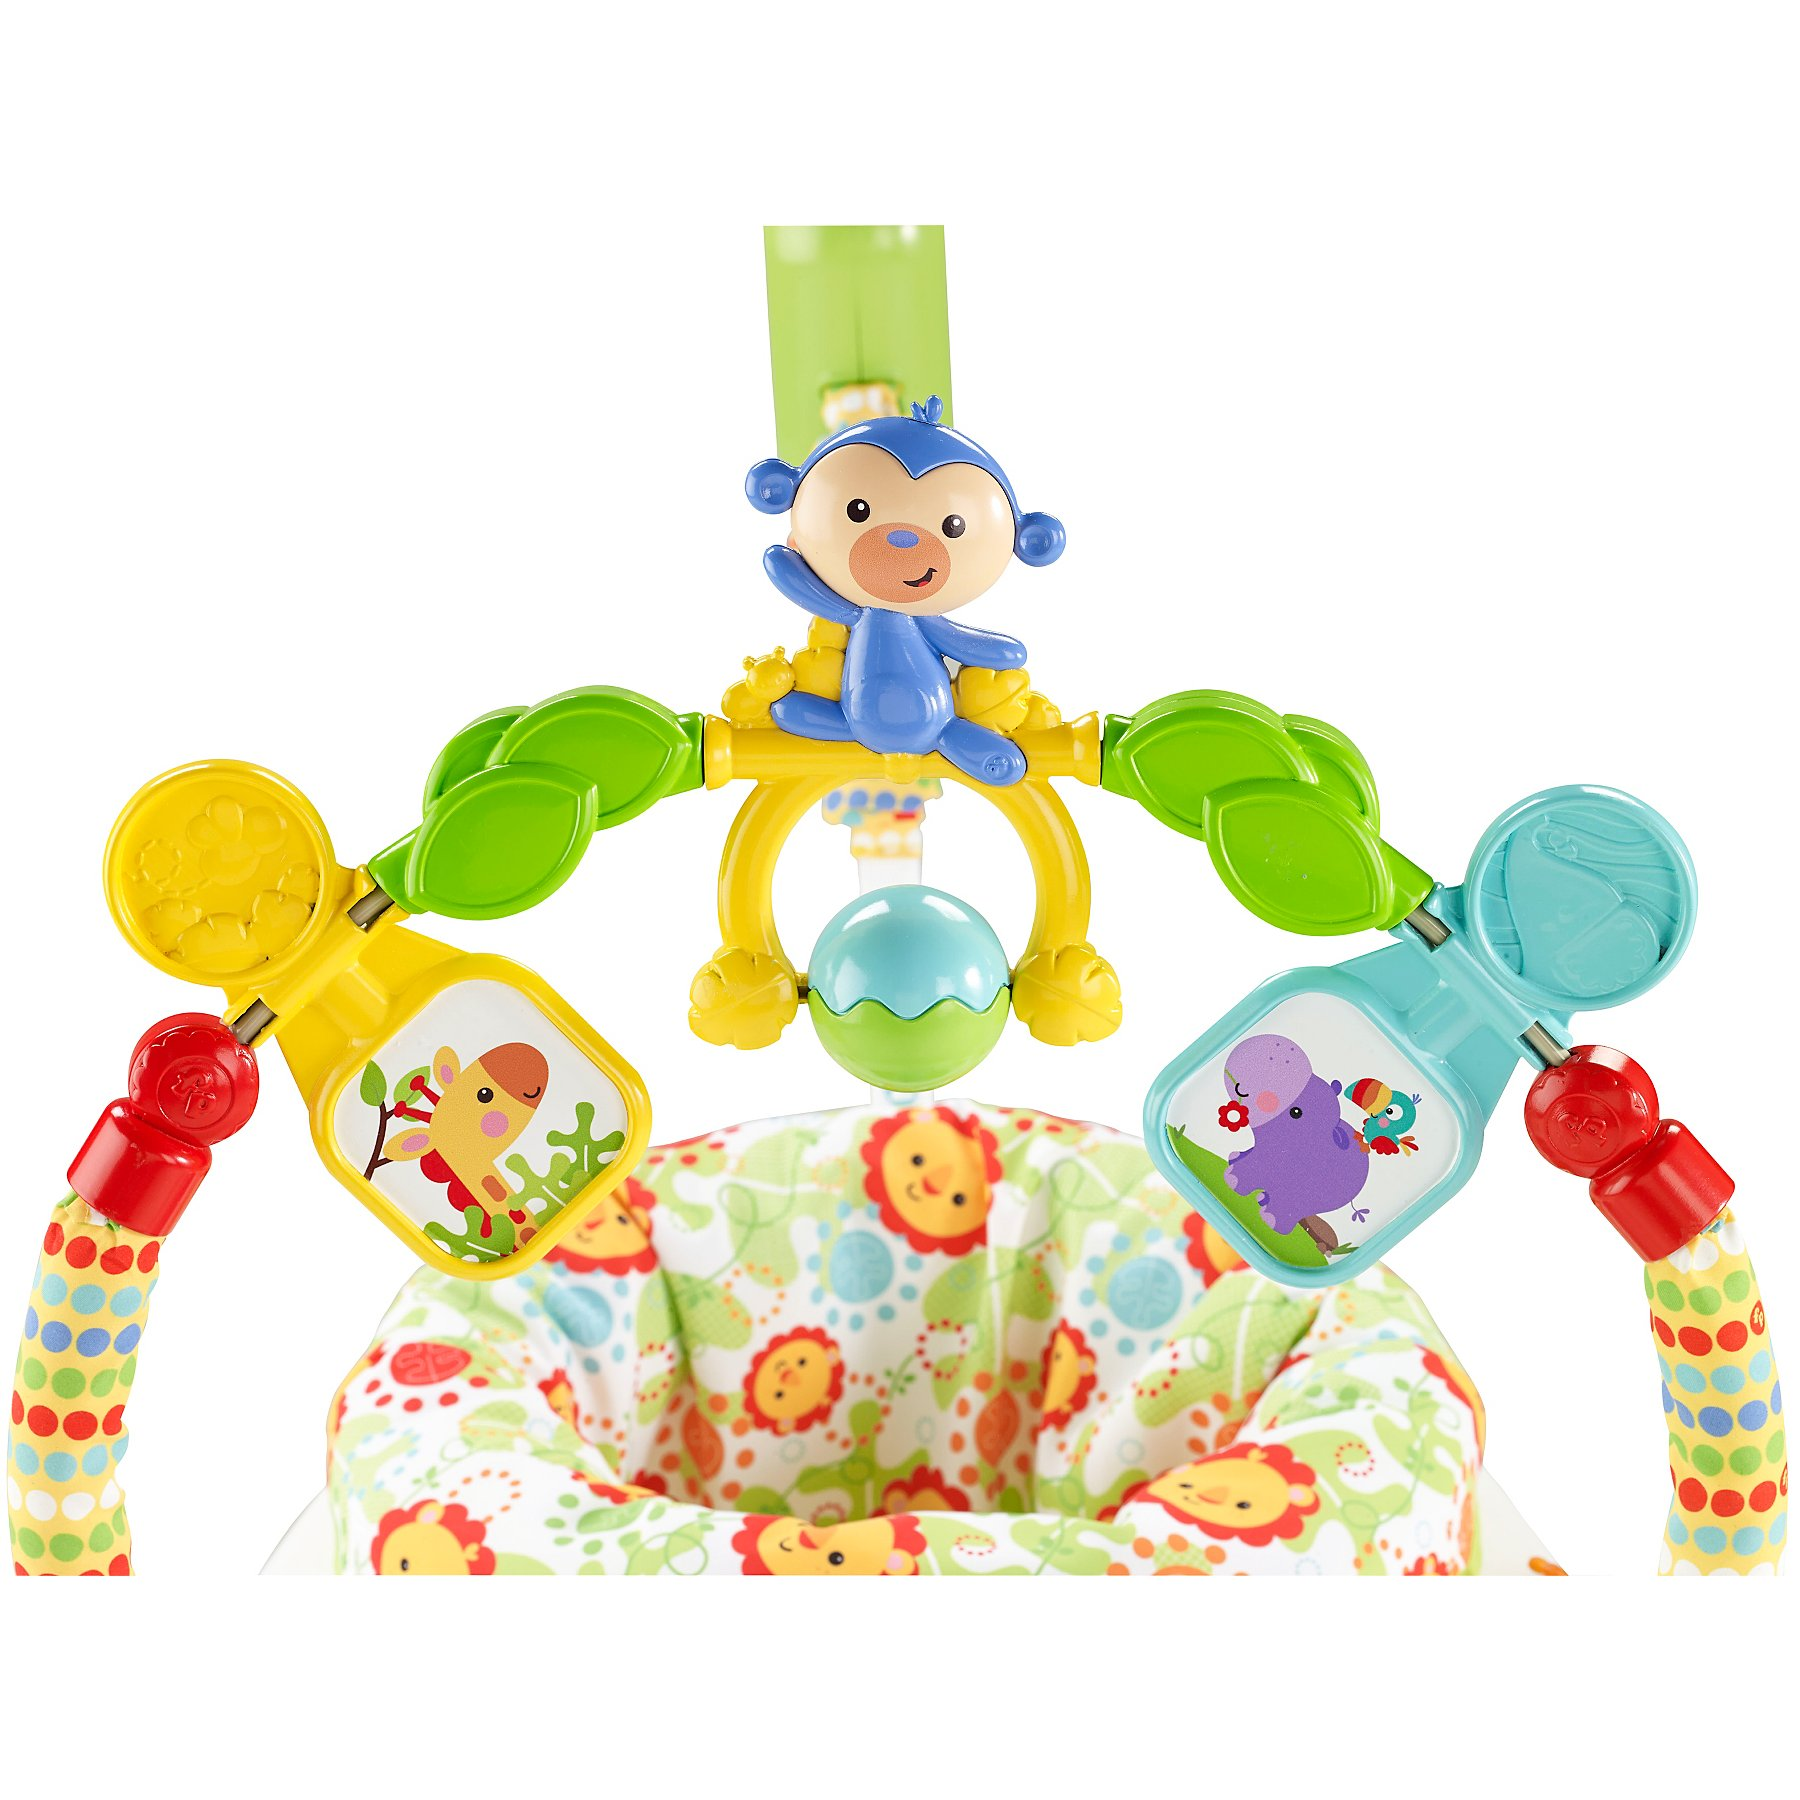 3a4a5708a8dd Fisher-Price Rainforest Friends SpaceSaver Jumperoo